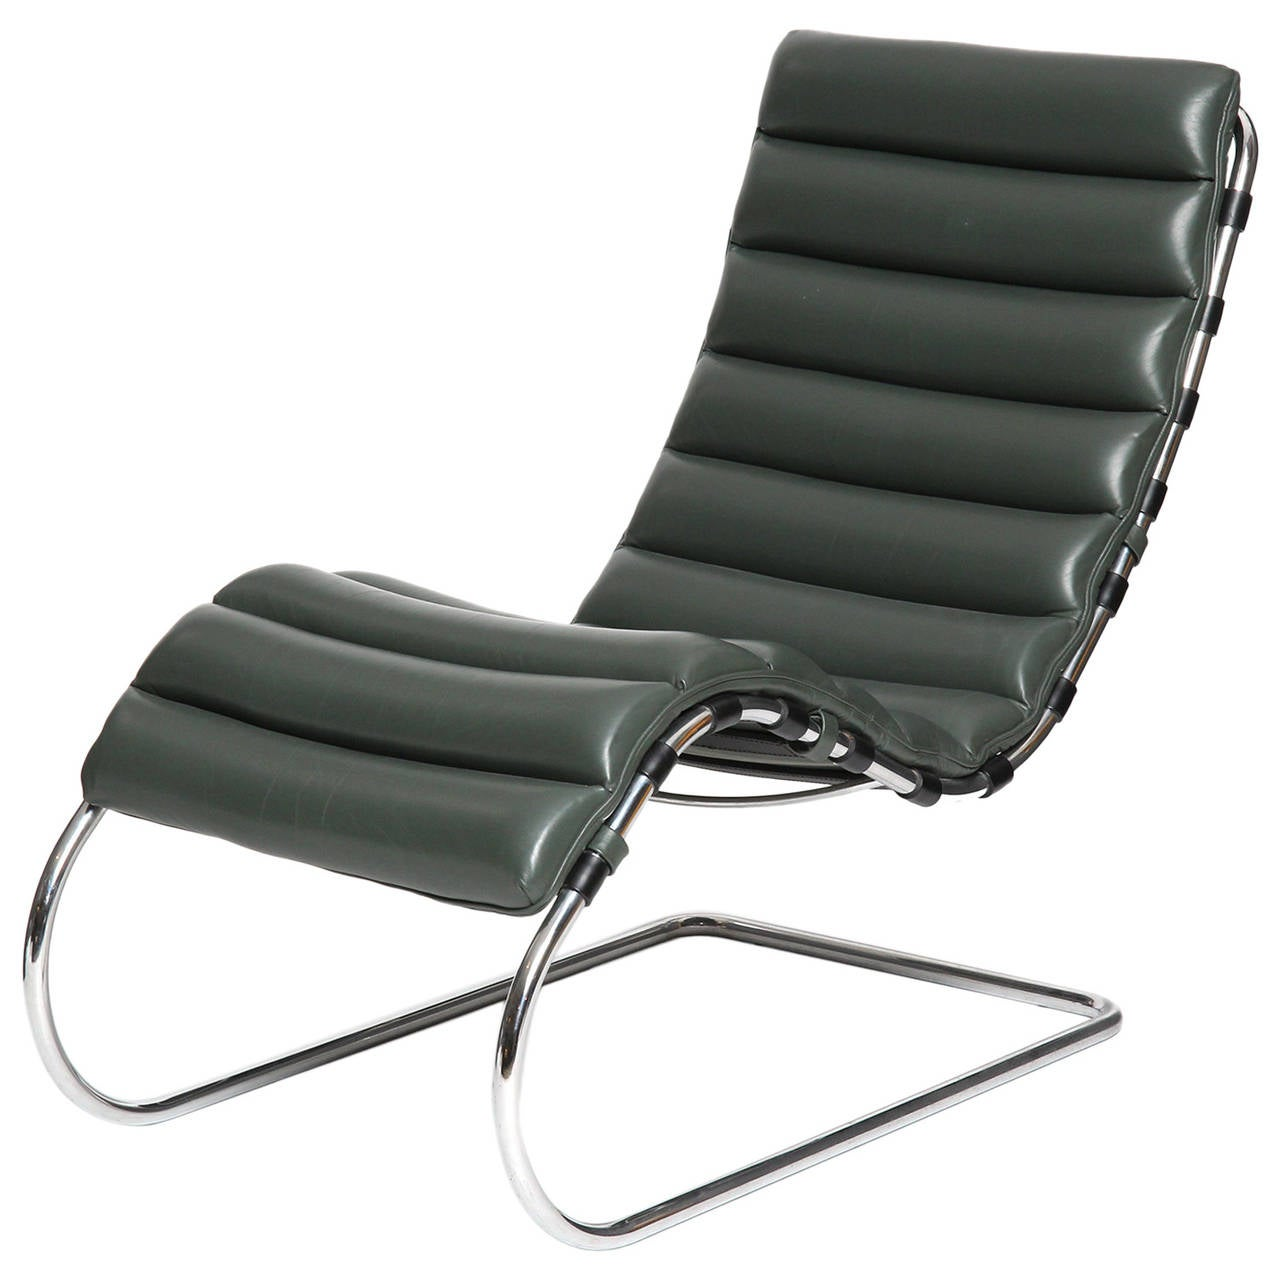 Lounge chair by ludwig mies van der rohe at 1stdibs - Mies van der rohe sedia ...